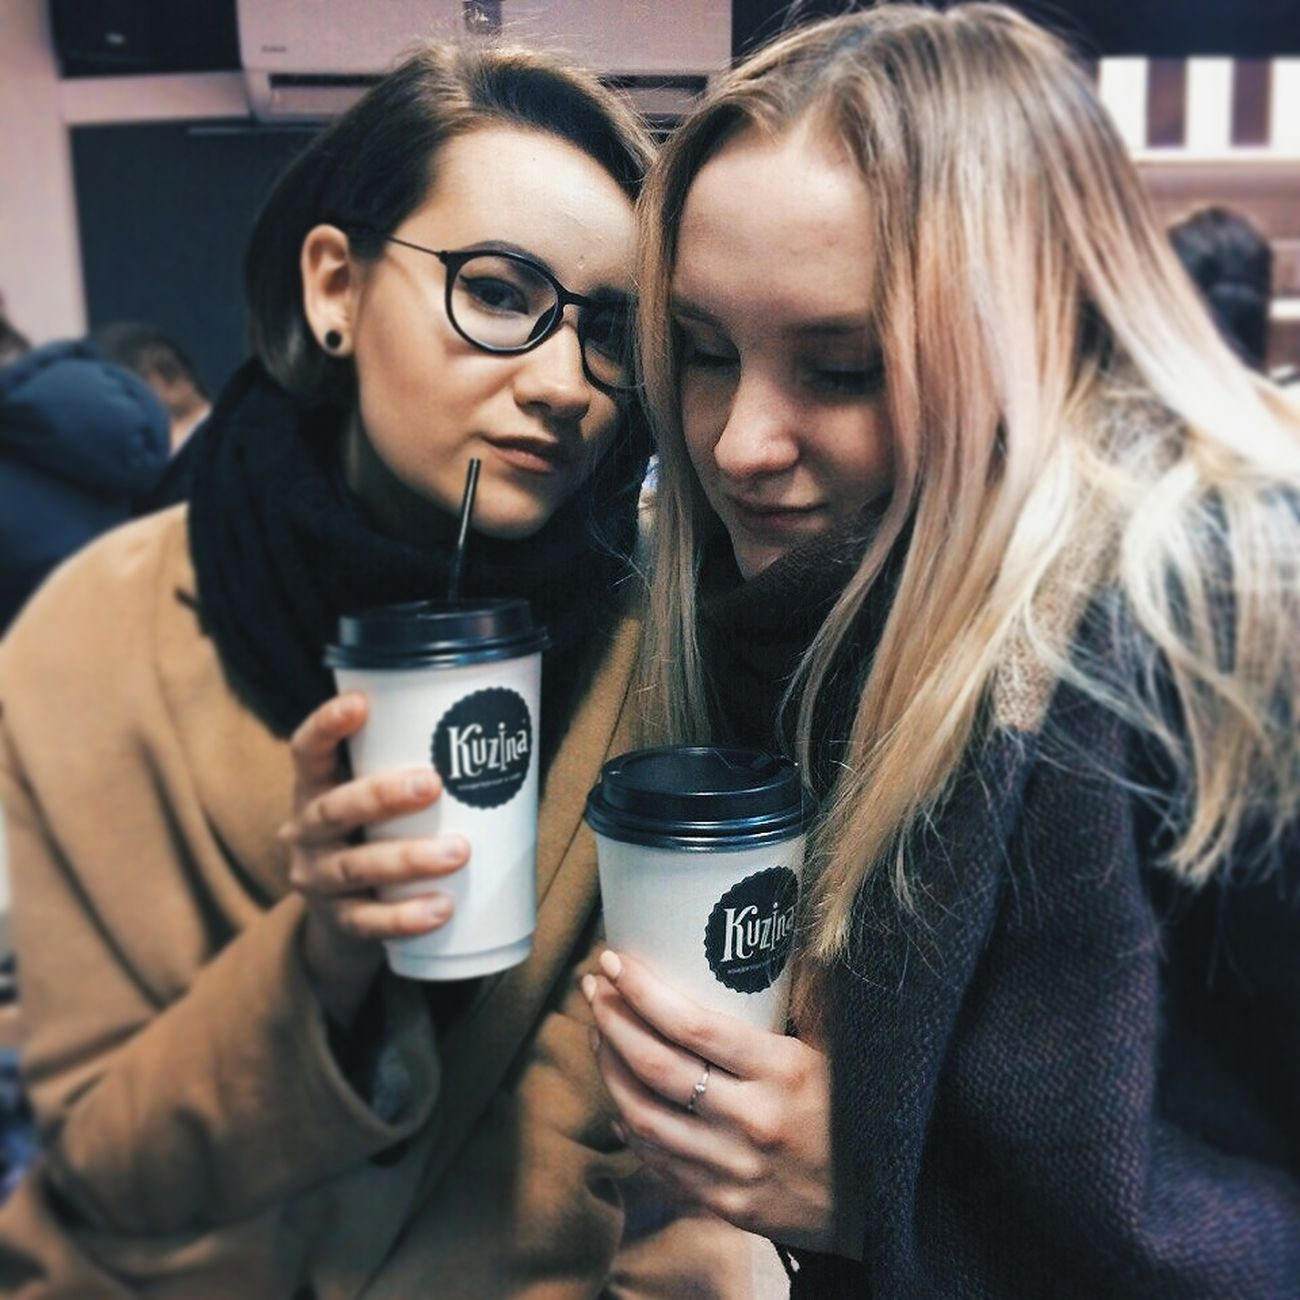 My new inst 💖 follow me💖 instagram.com/viktoria_nikon/ Two People Friendship Beautiful People Women Smiling Instagood Drink Food And Drink Koffe Koffee Blackandwhite Black & White Me Girl Beautiful Woman Russia Siberia Russian Girl First Eyeem Photo Night Real People Spring Blonde Blond Hair Followme